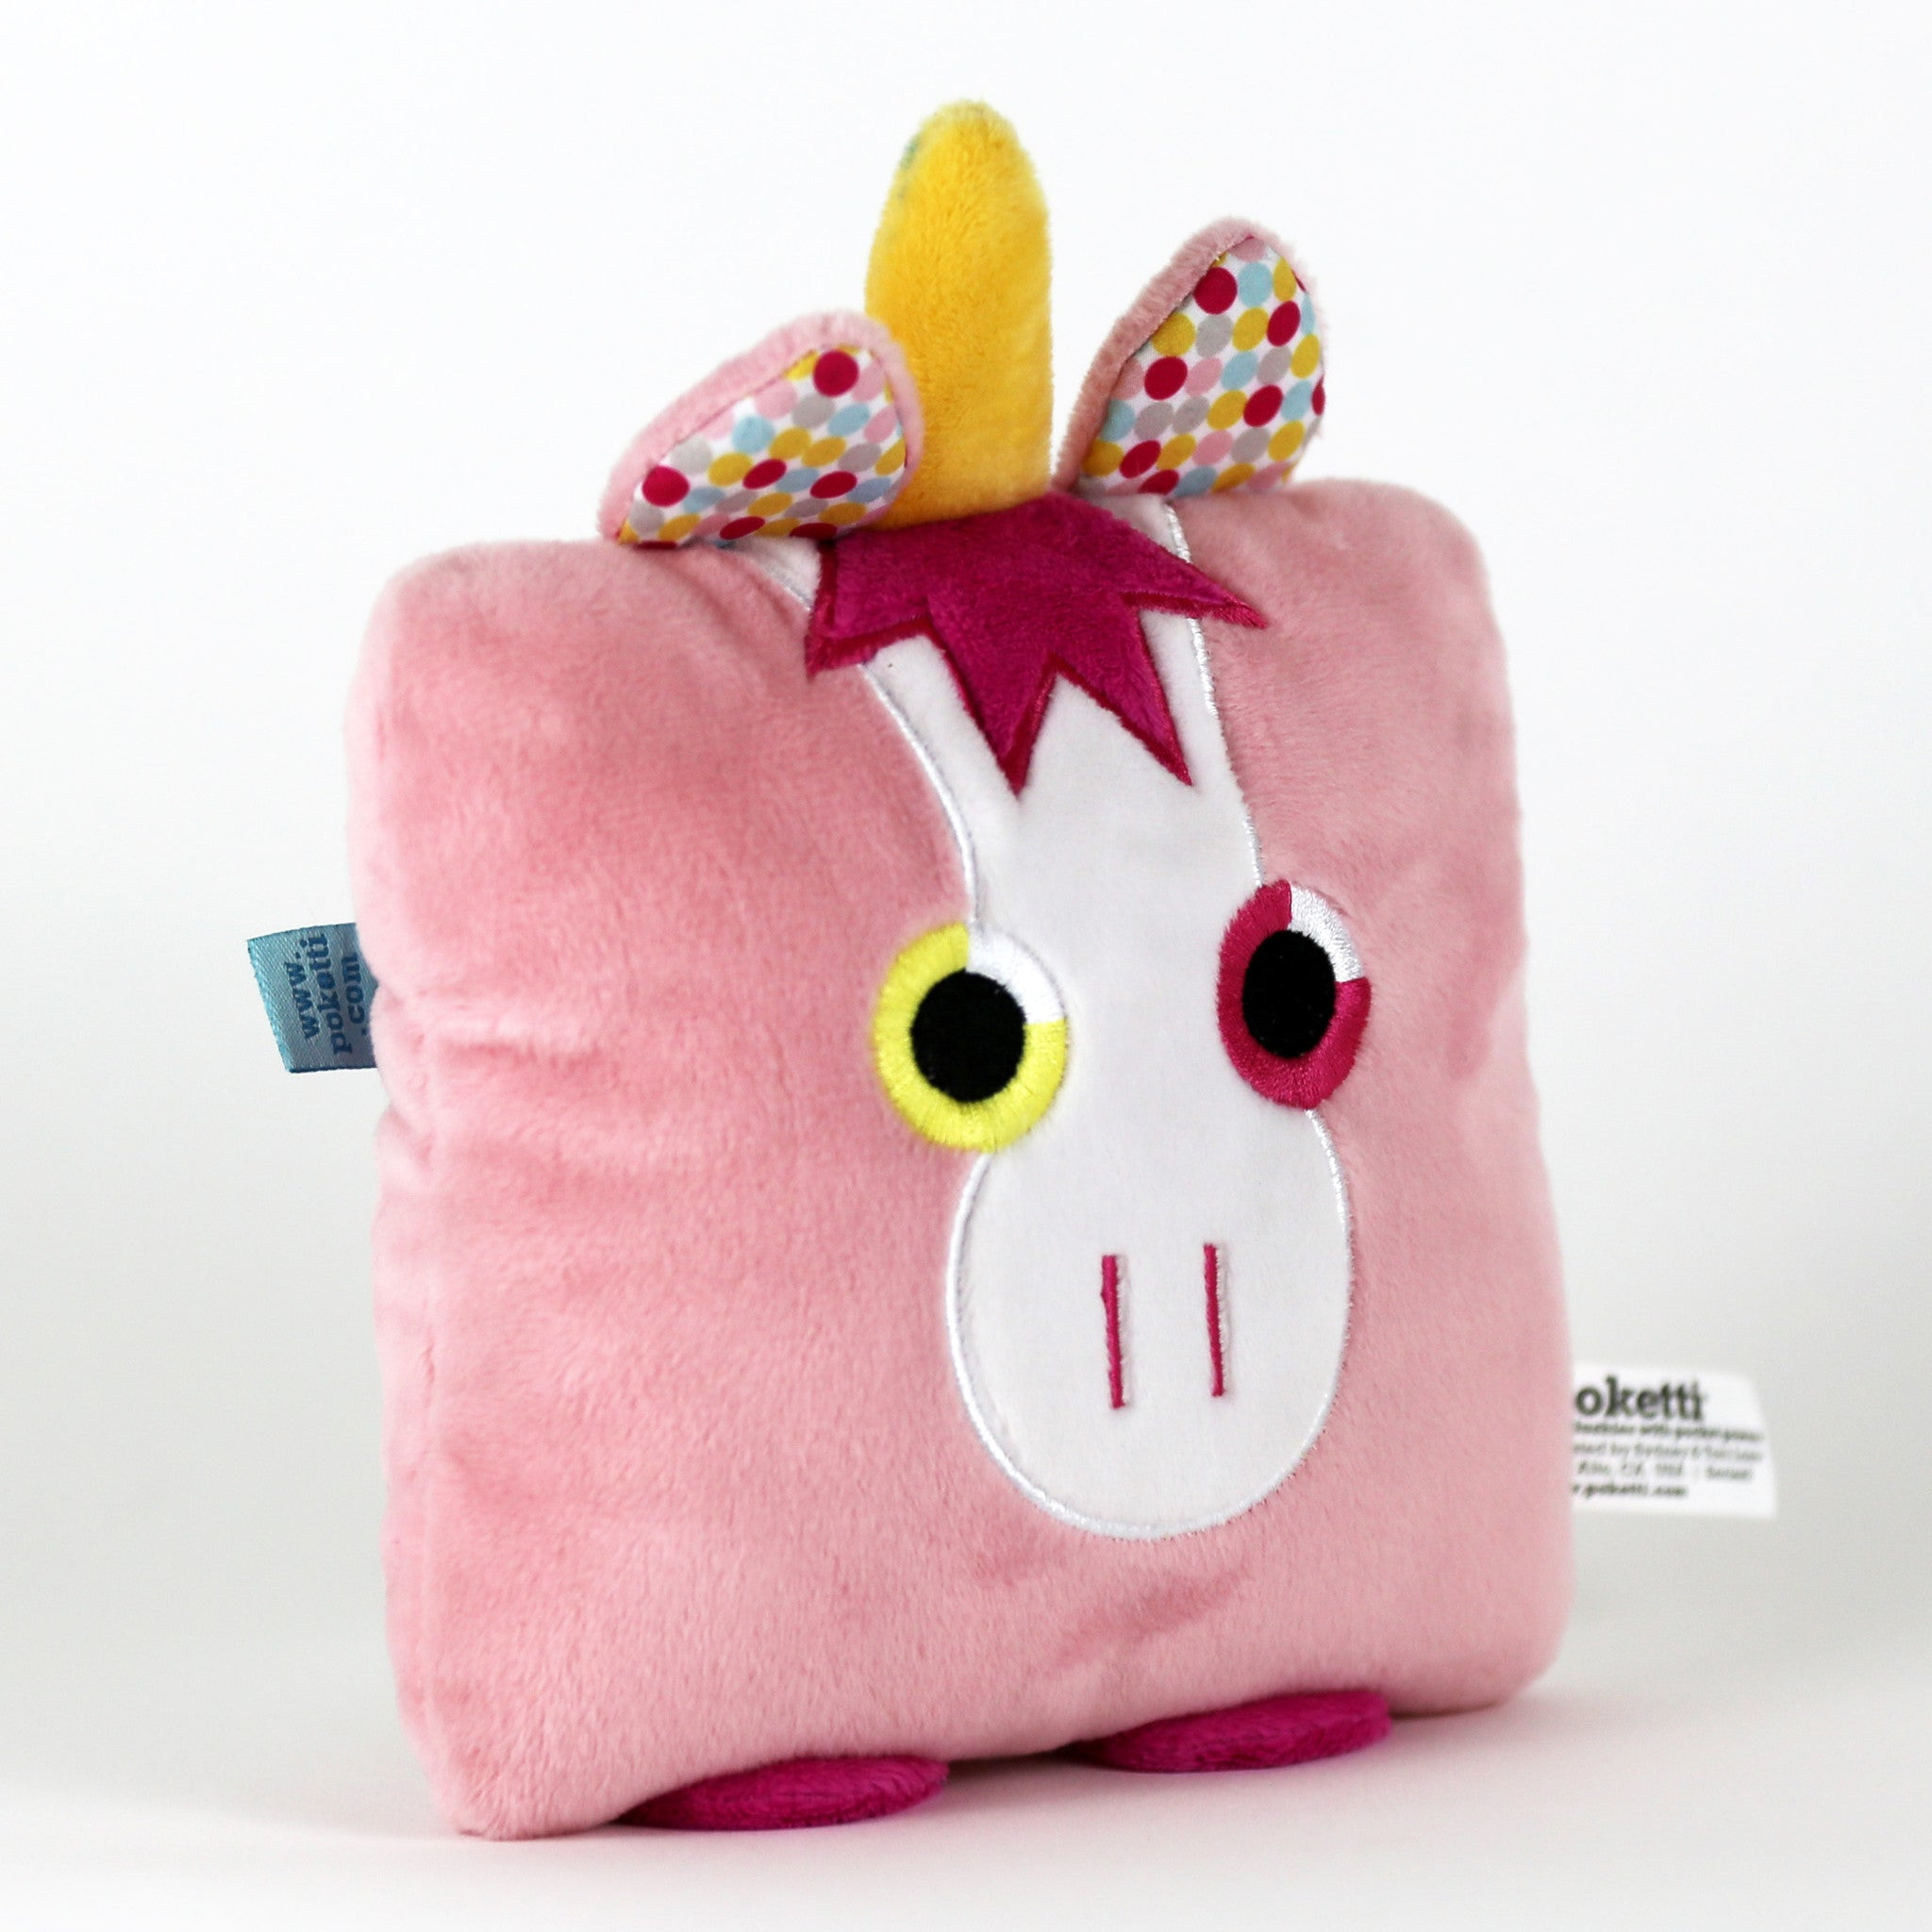 Poketti Plushies Series2 Shawn the Unicorn